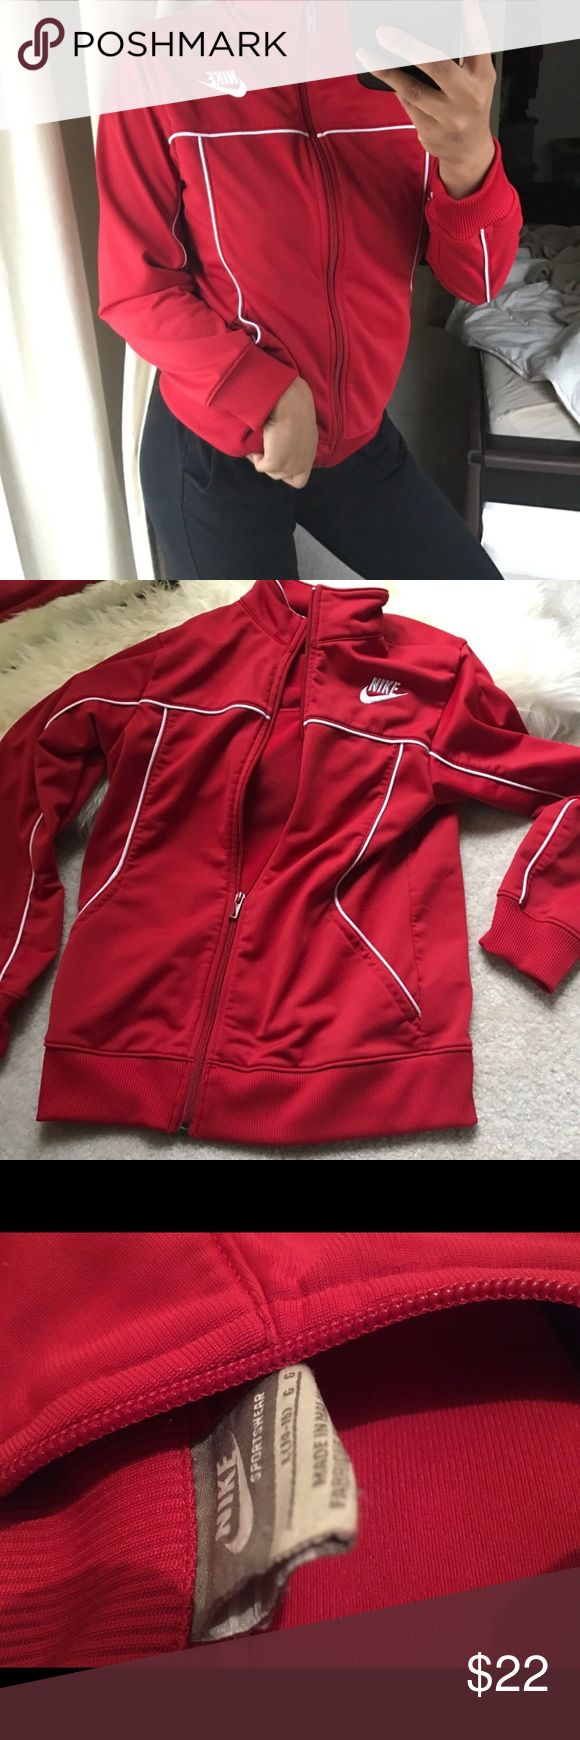 ❗️Today Only❗️ Red Nike Jacket Tag Says Size Large Nike Jackets & Coats